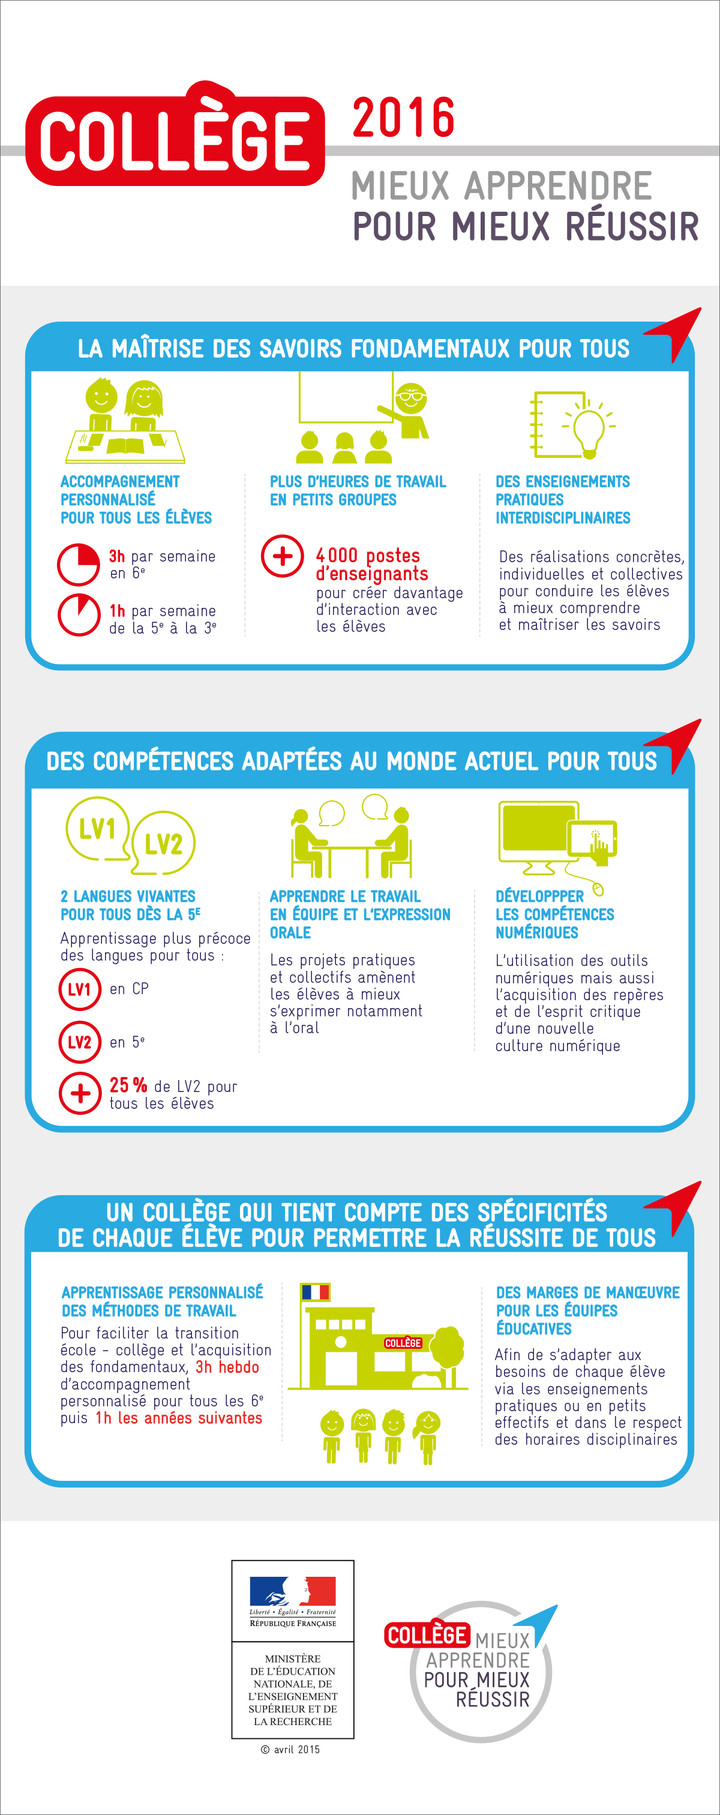 infographie_college_2016_418068.89